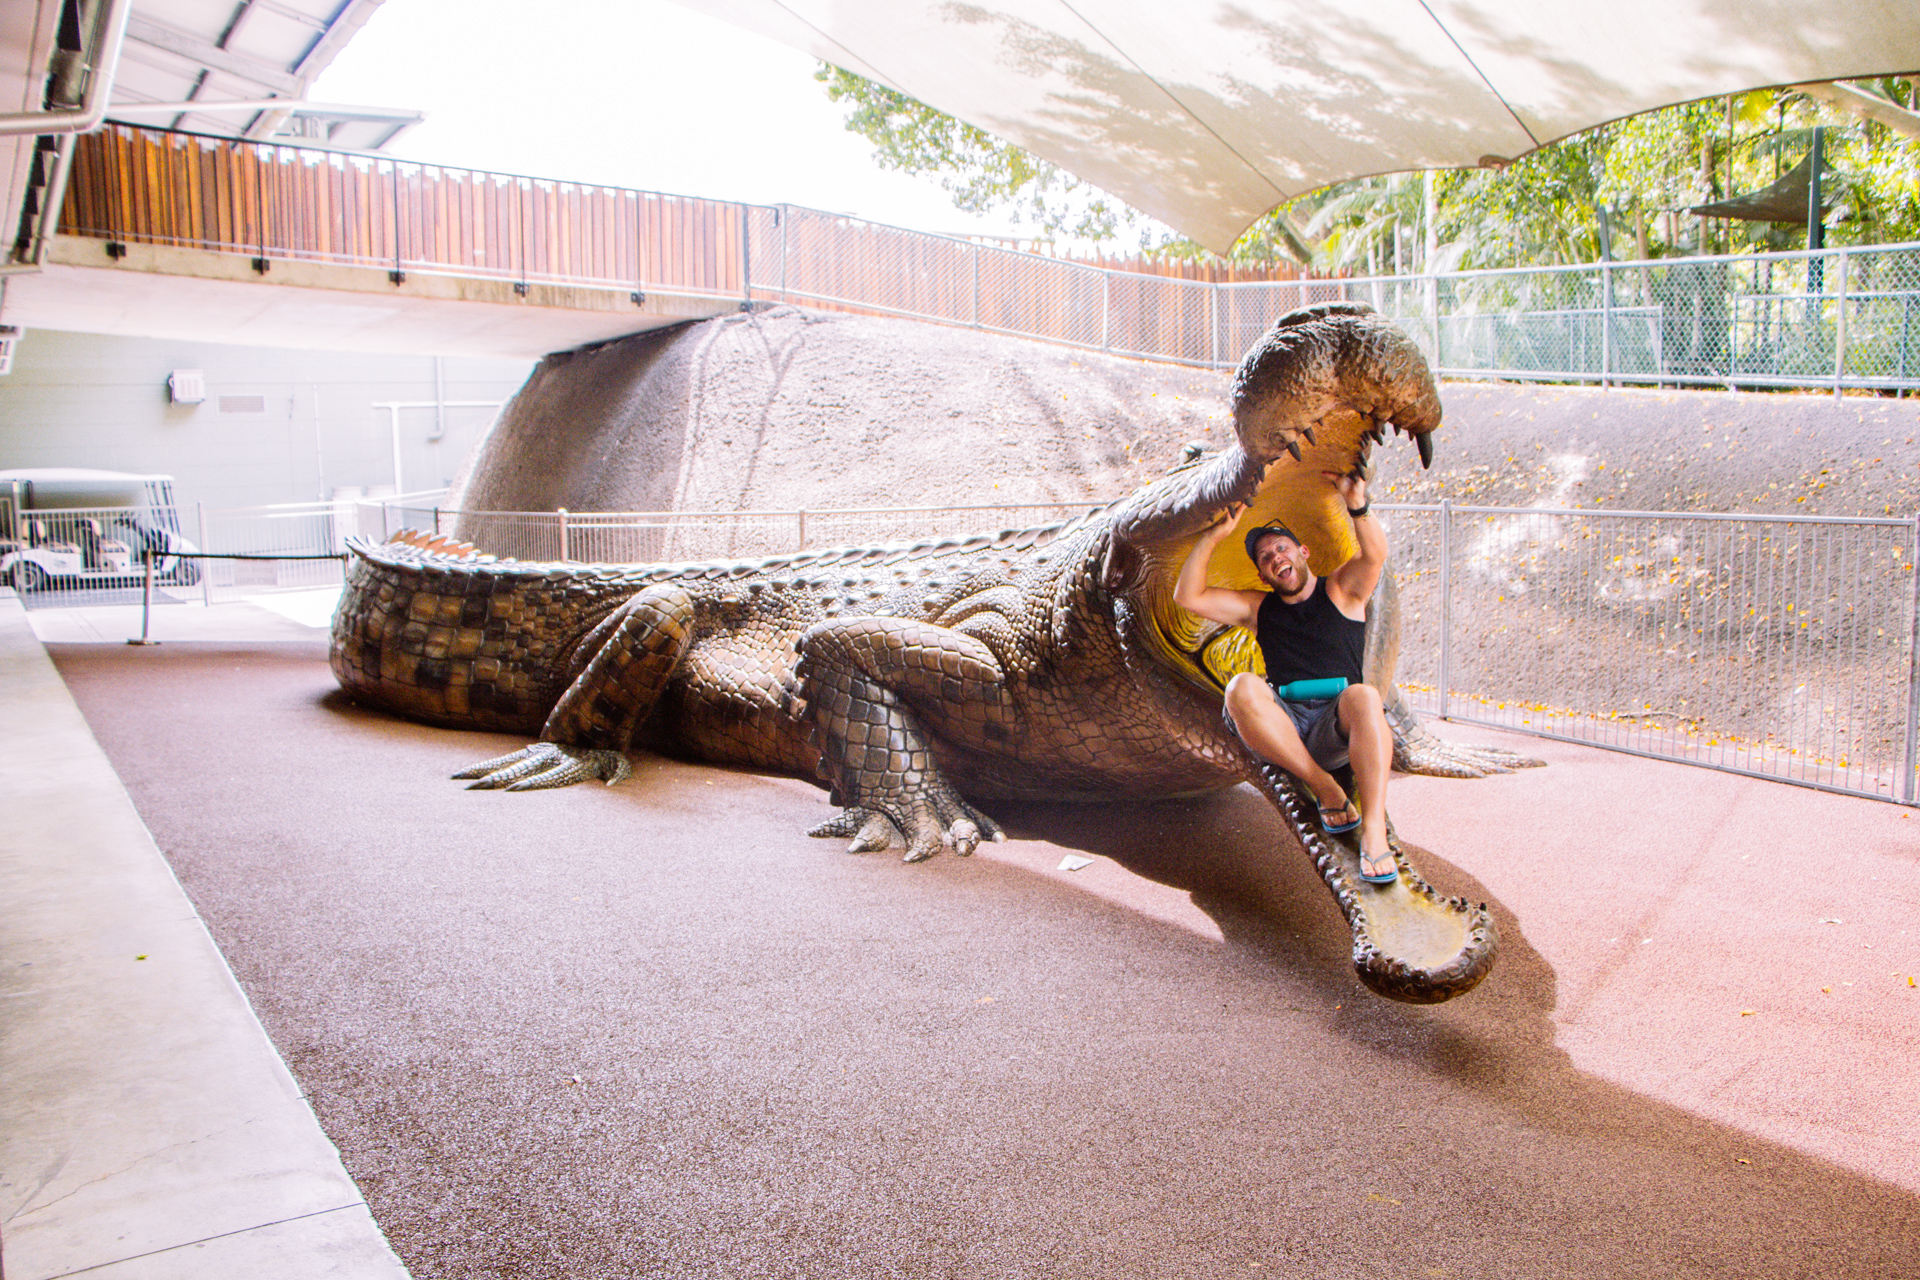 Worlds biggest crocodile at Australia Zoo - Steve Irwin